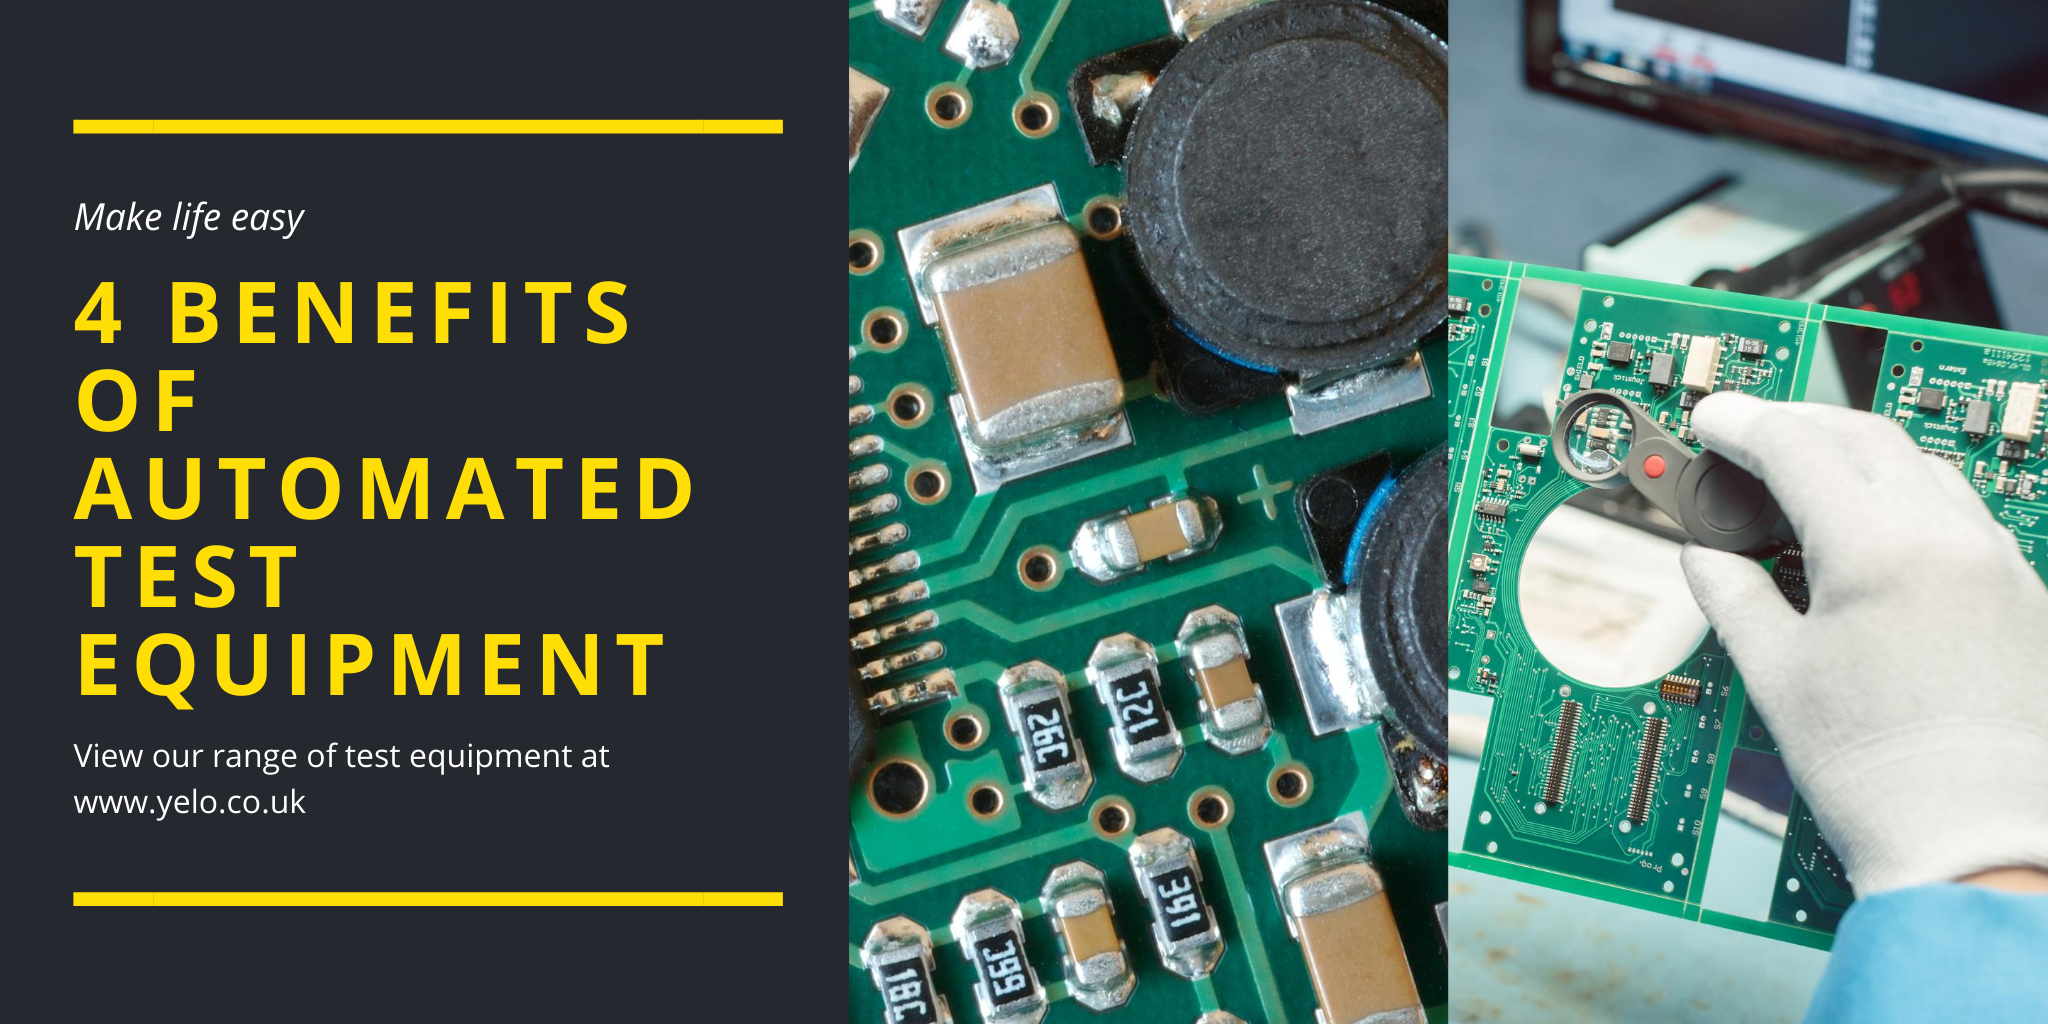 4 Benefits Of Automated Test Equipment